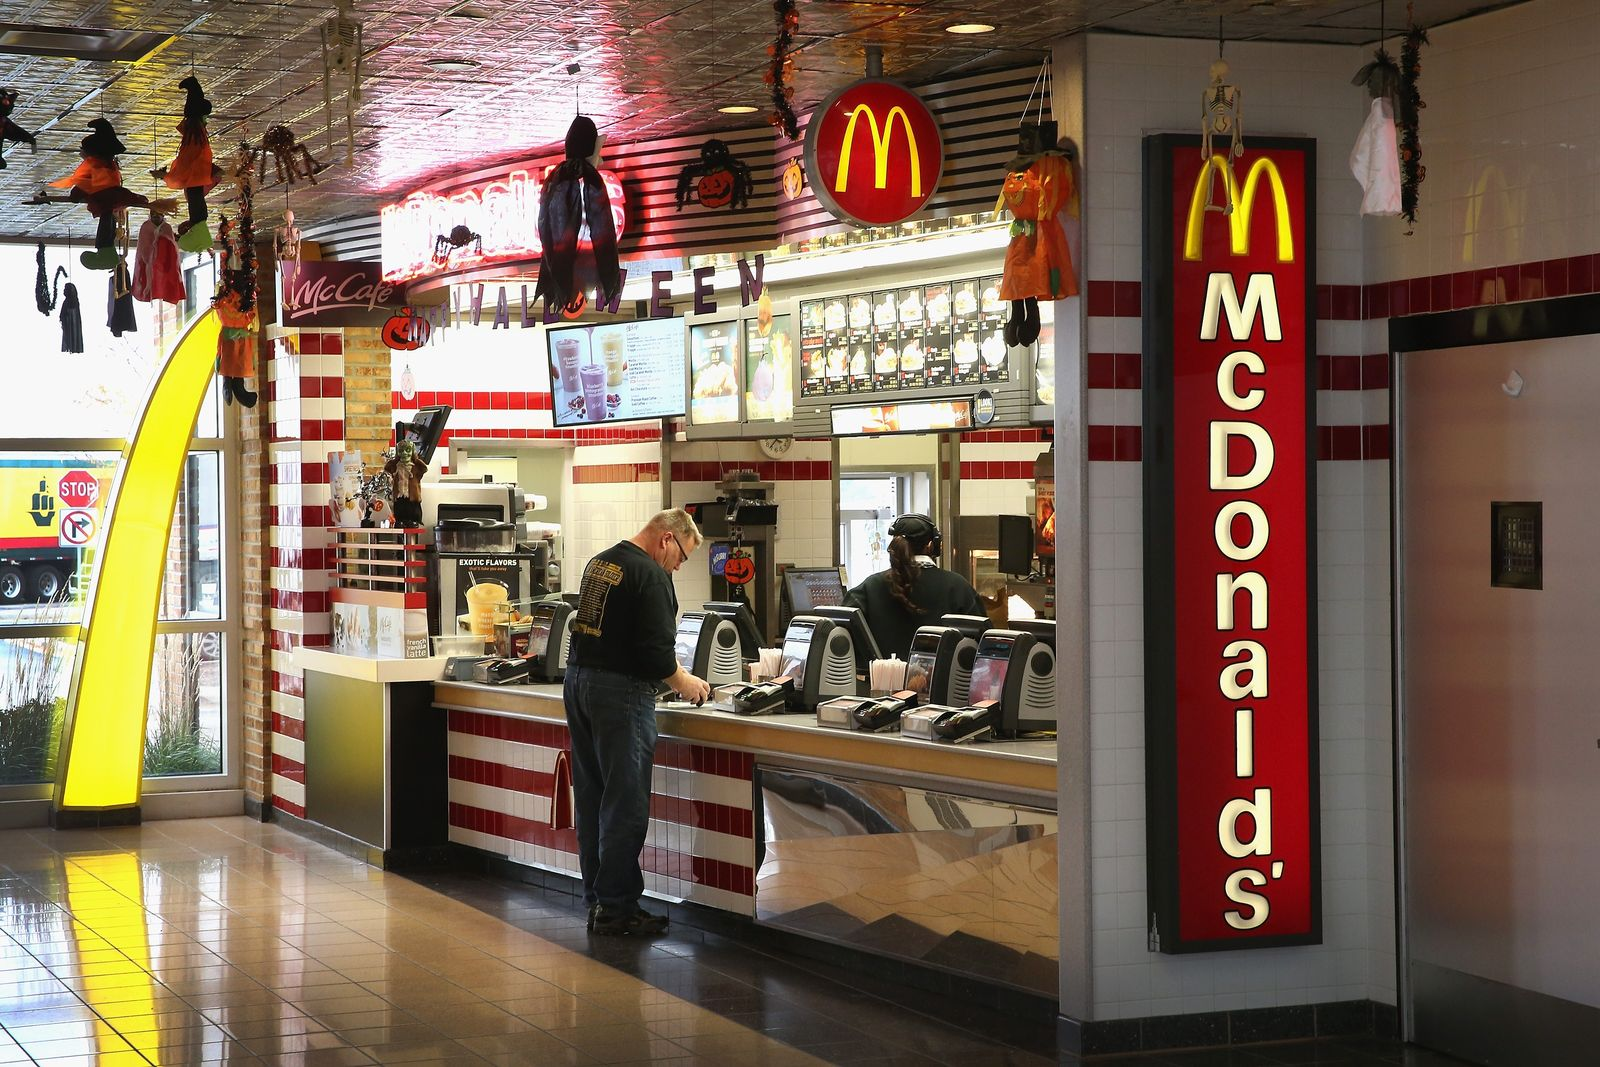 US-MCDONALDS-TO-ALTER-DOLLAR-MENU-WITH-HIGHER-PRICED-ITEMS